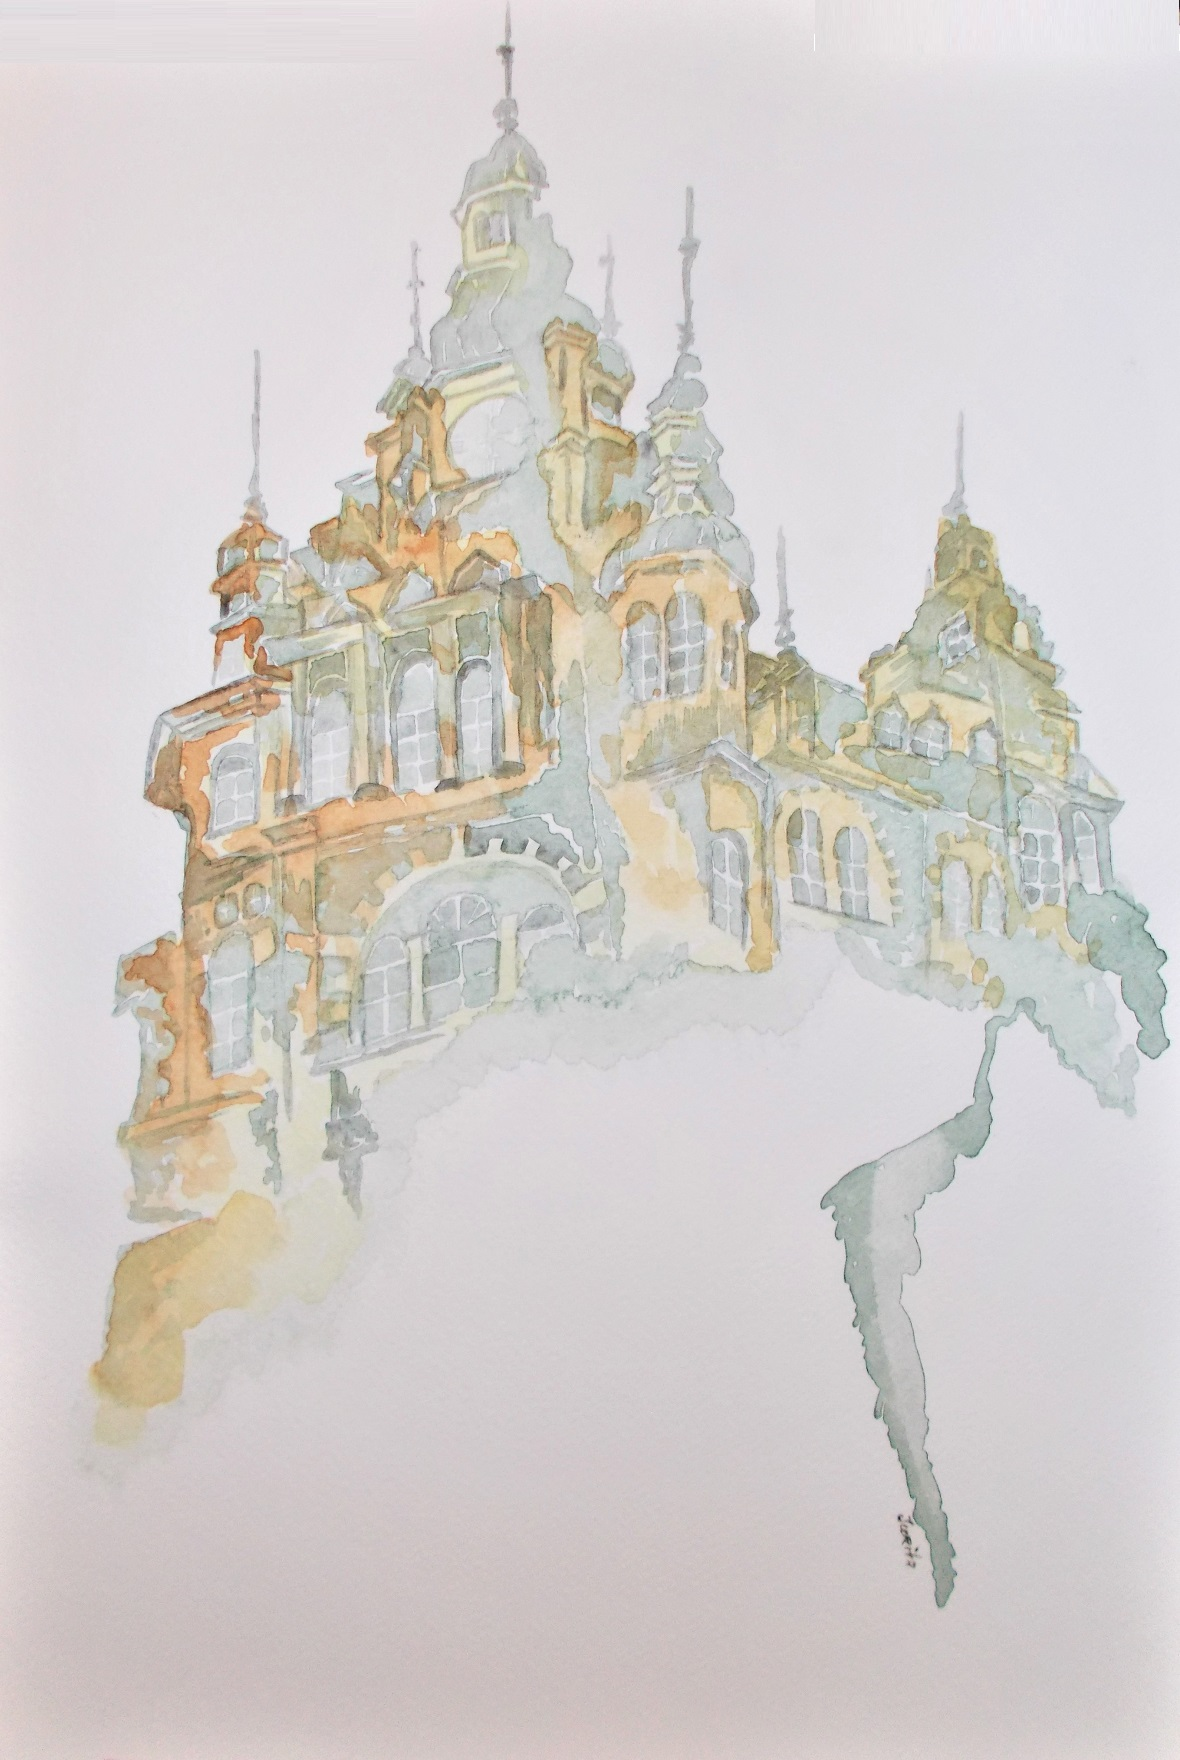 Gothic Cathedrals Dream, Jurita, 2017, watercolor, 42 x 29 cm